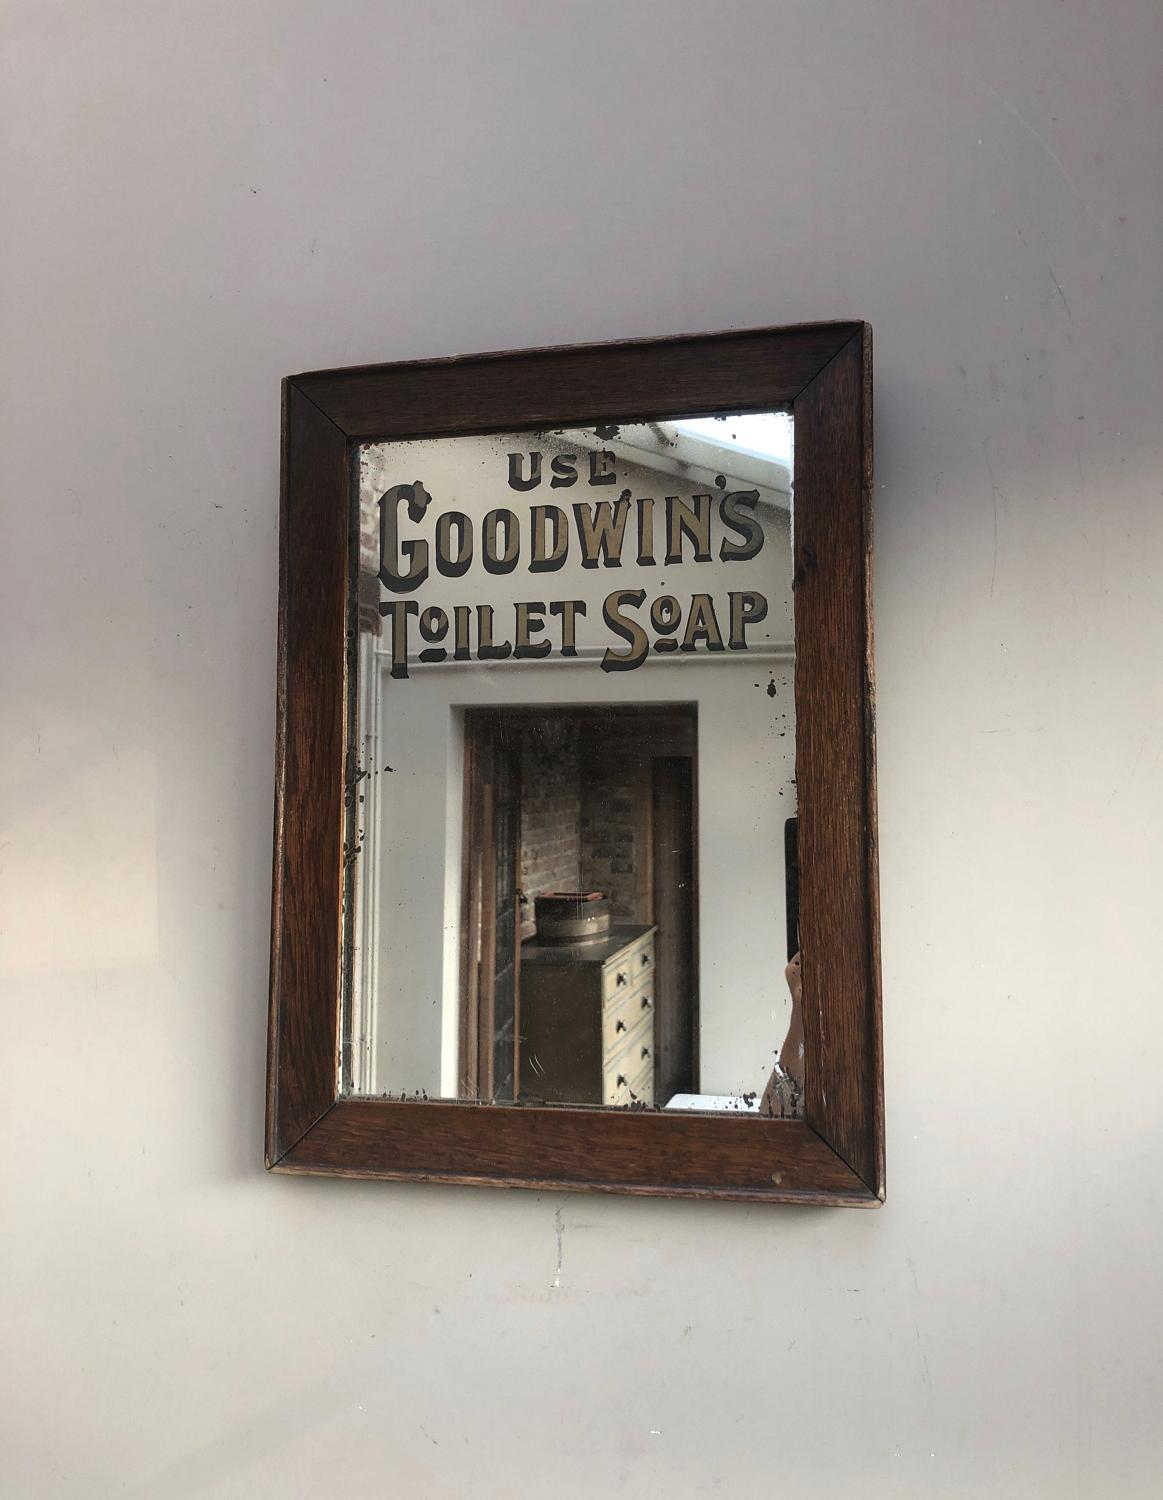 Edwardian Shops Advertising Mirror - Use Goodwins Toilet Soap